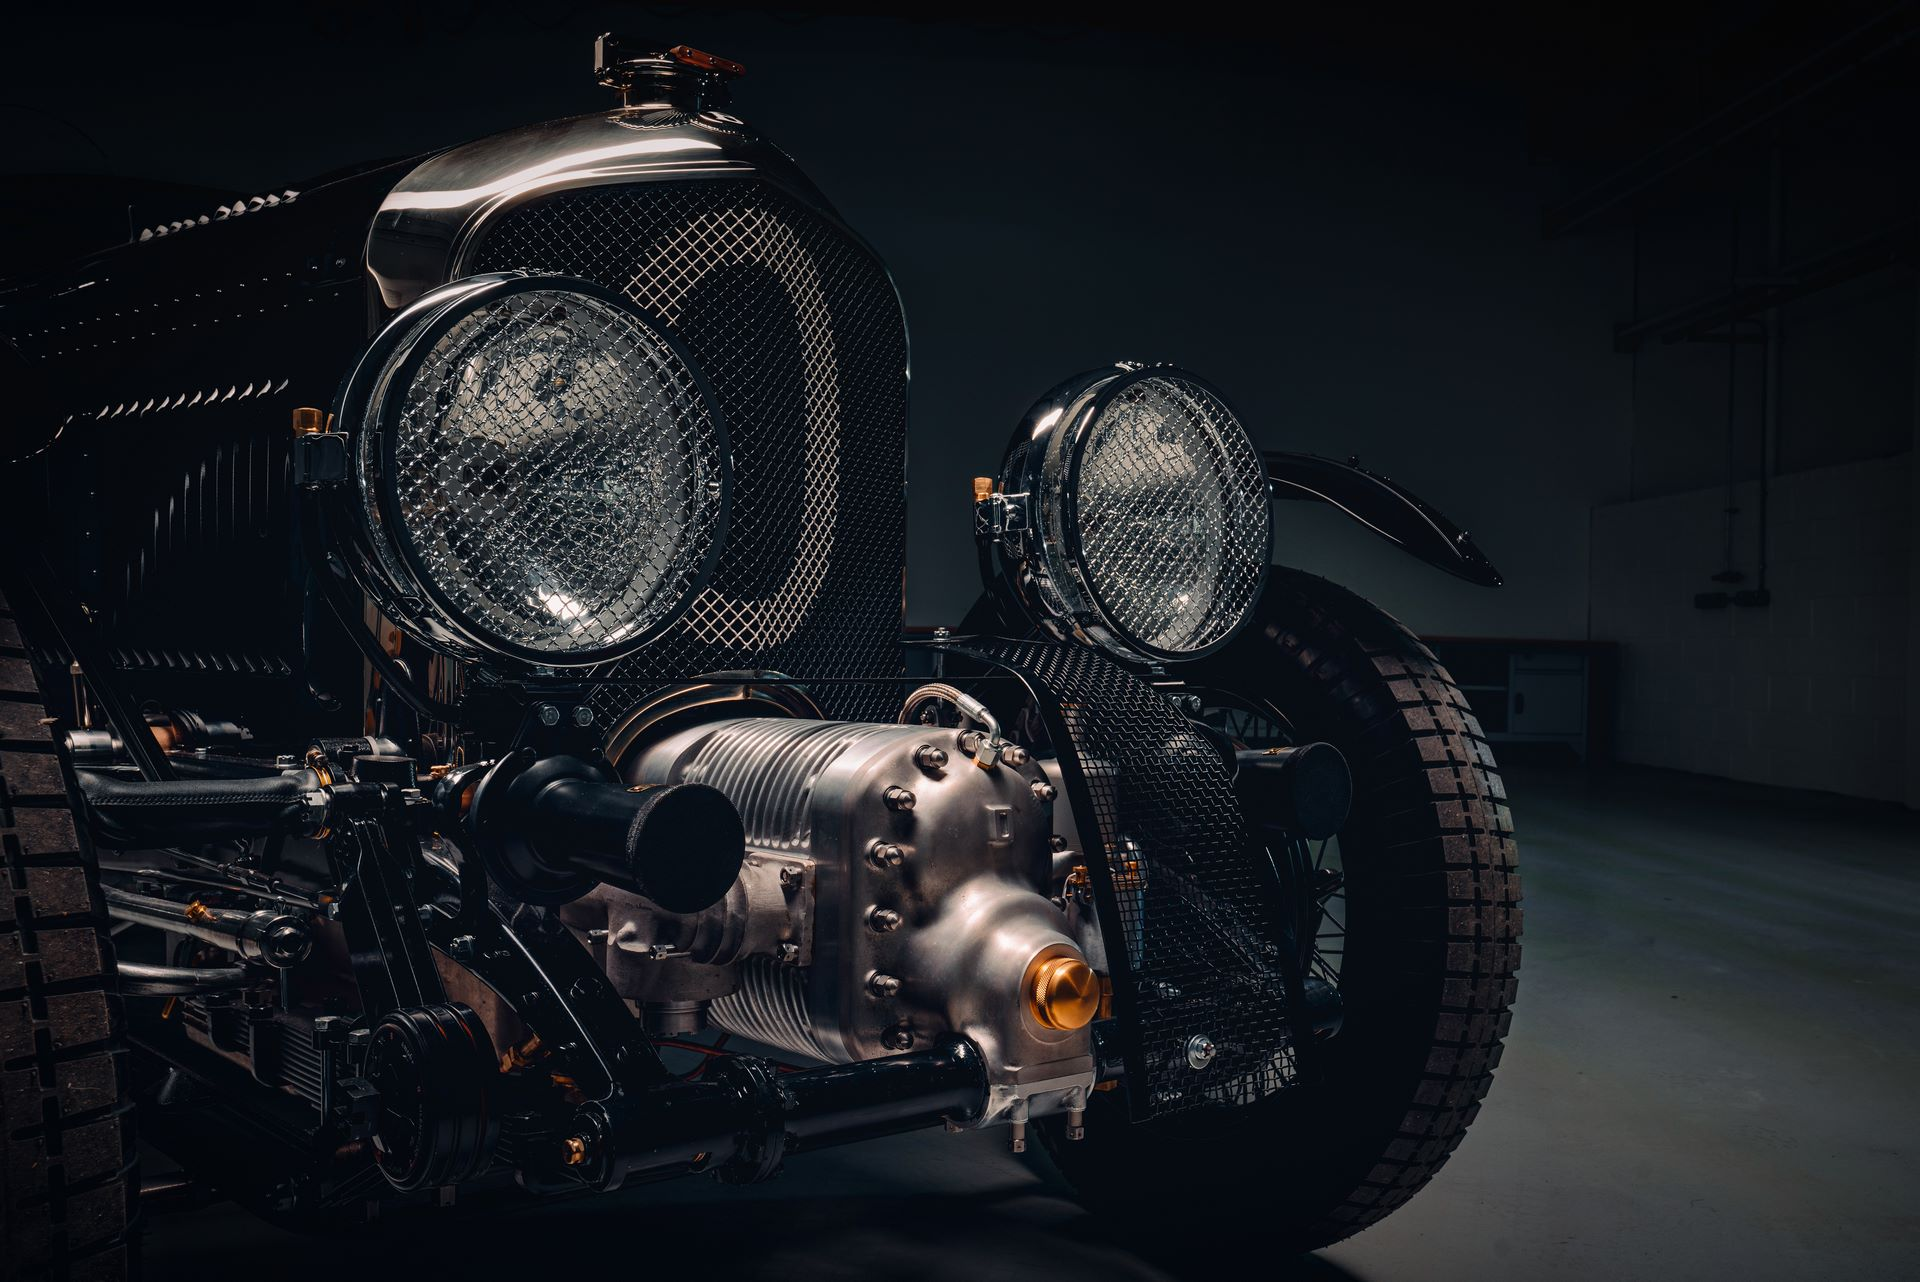 Bentley-Blower-Car-Zero-6